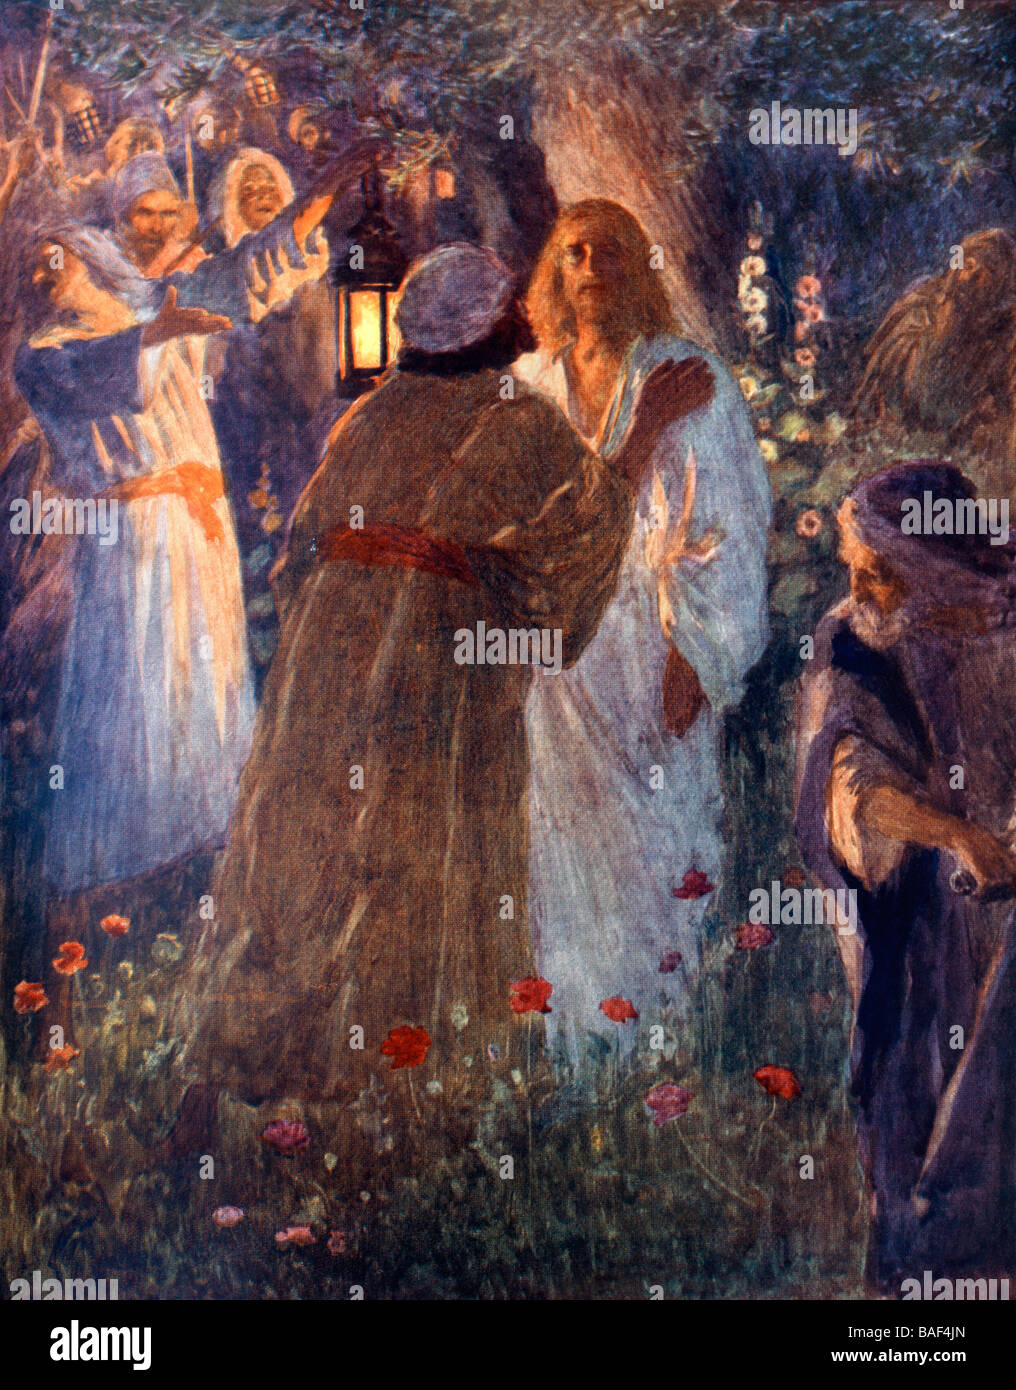 The Betrayal Of Christ Jesus In The Garden Of Garden Of Gethsemane Stock Photo 23689869 Alamy